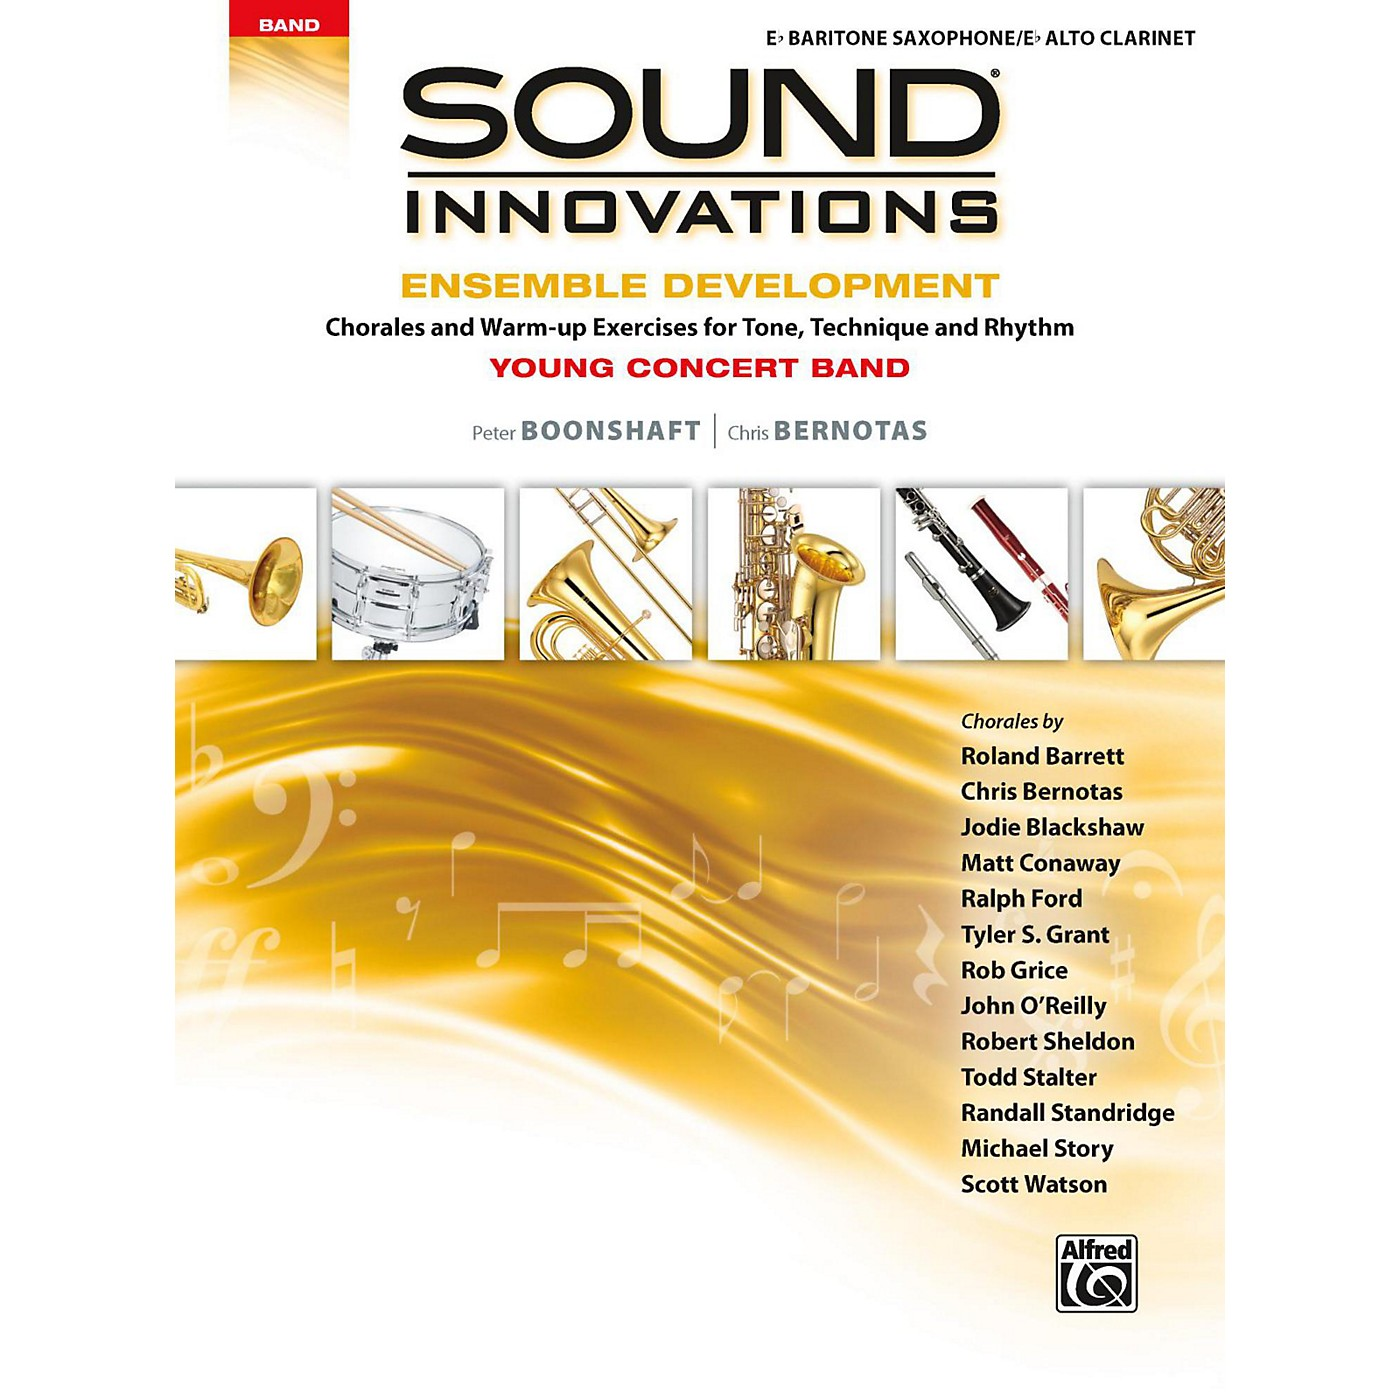 Alfred Sound Innovations for Concert Band - Ensemble Development for Young Concert Band Baritone Saxophone/Alto Clarinet thumbnail